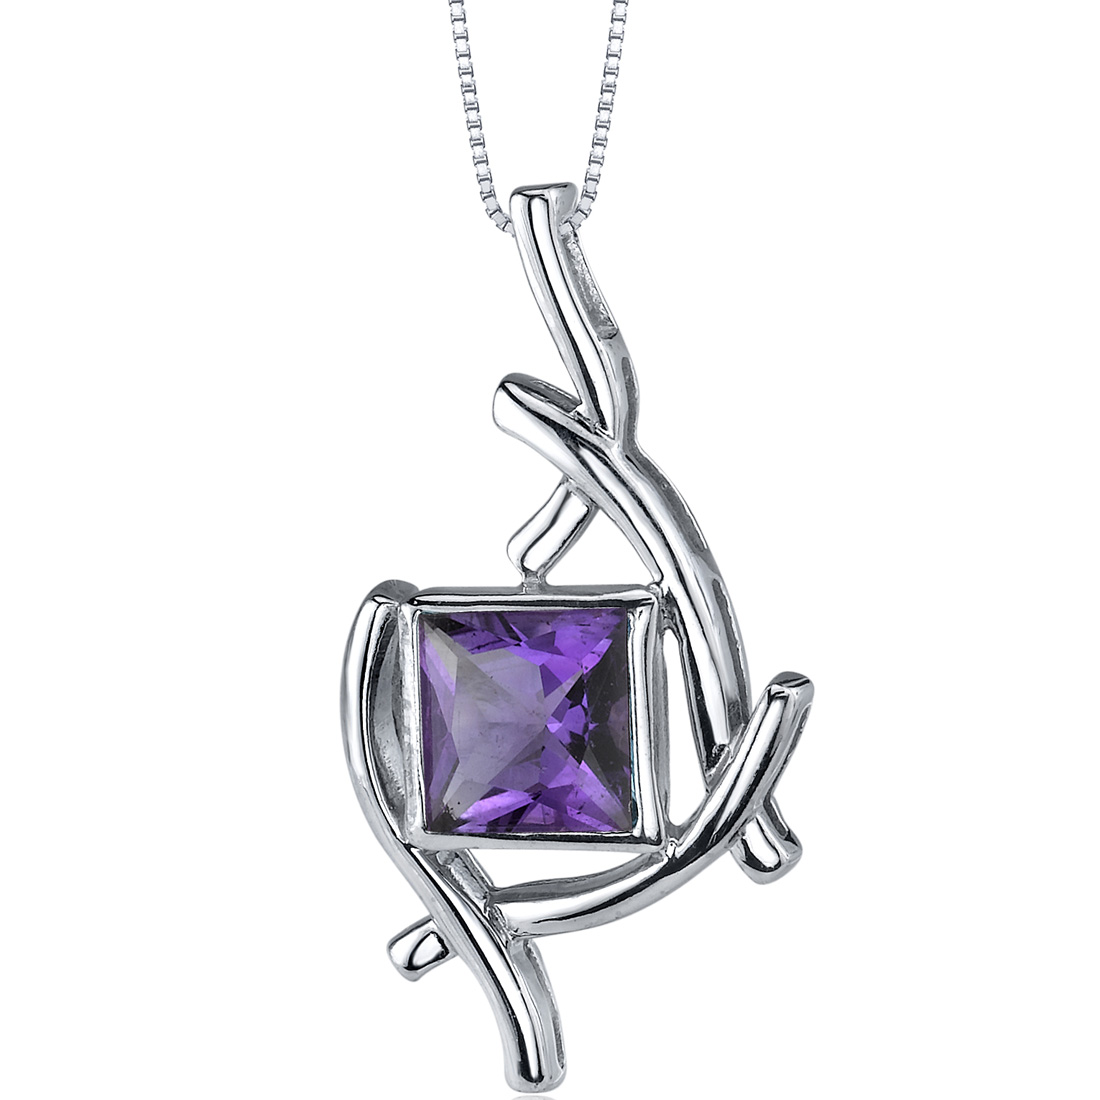 peora Artistic Design 1.50 carats Princess Cut Sterling Silver Amethyst Pendant at Sears.com